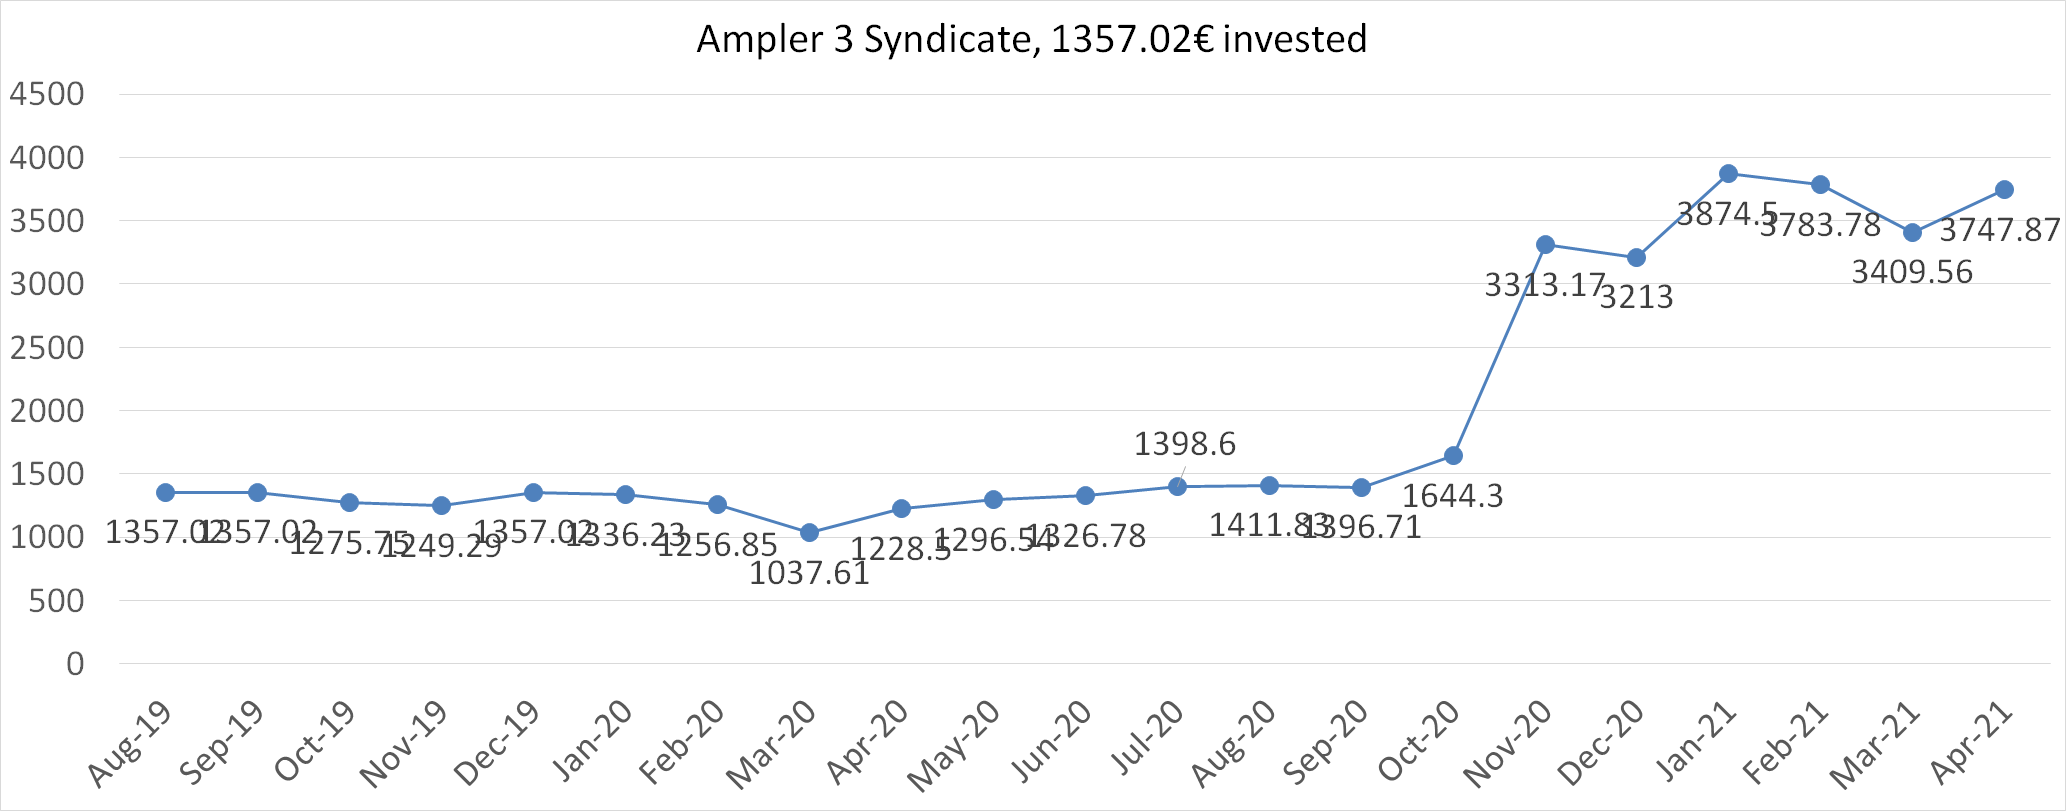 Ampler 3 syndicate worth in april 2021